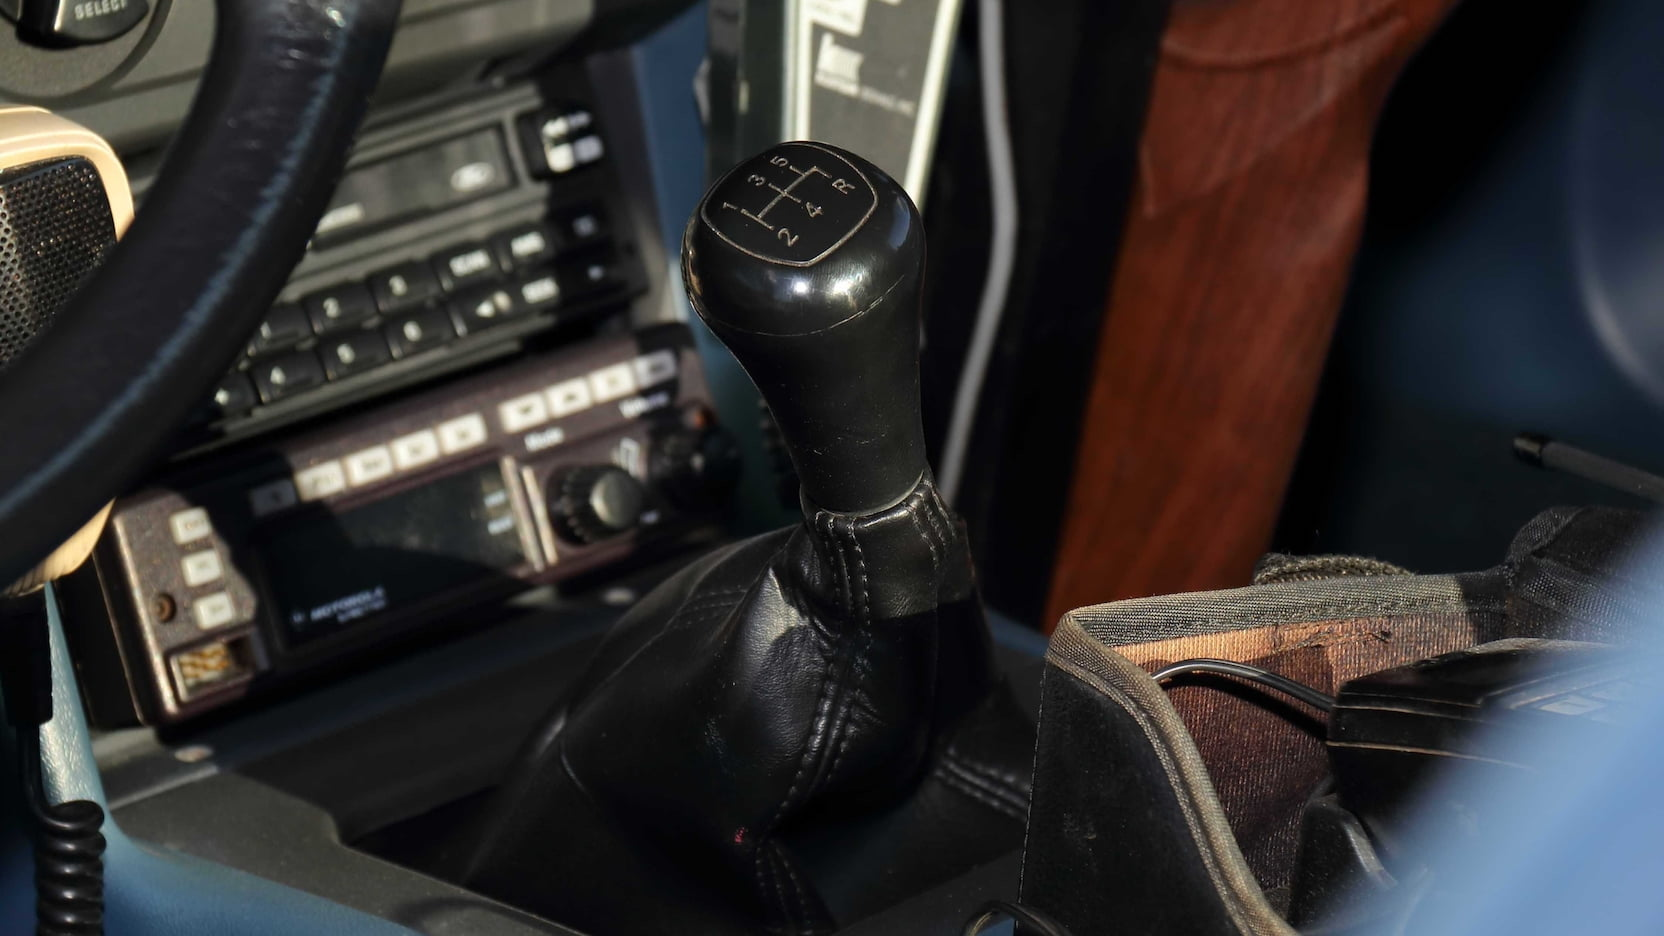 1989 Ford Mustang ssp police car shifter